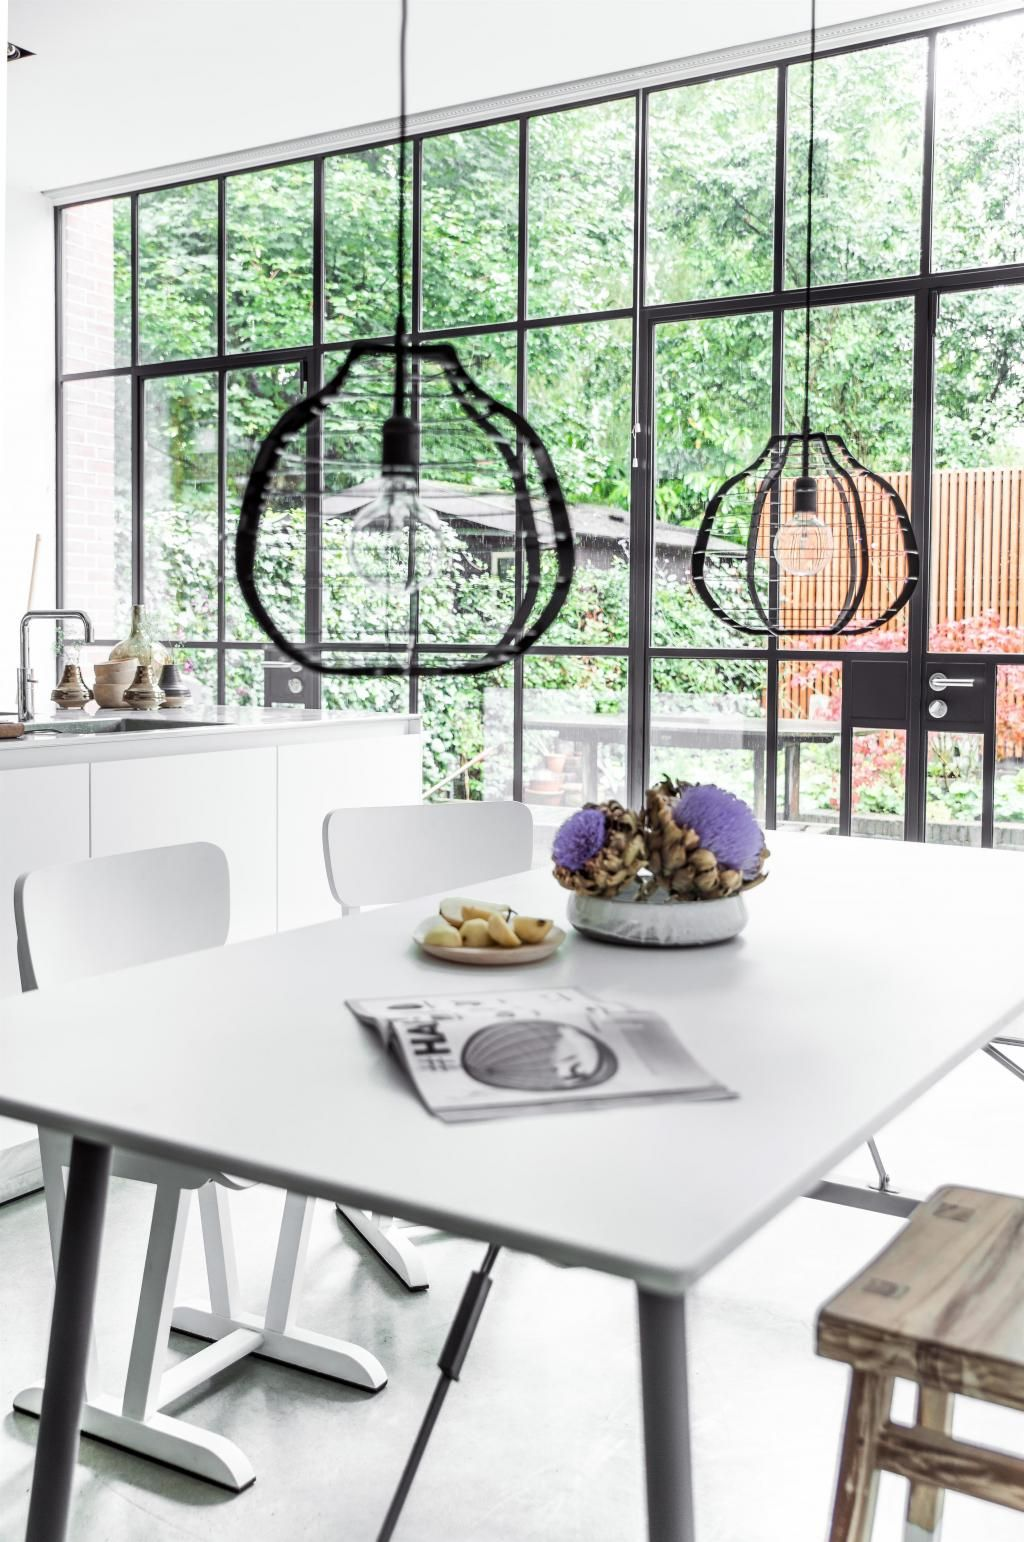 Mobile Cucina Xl Forest Hanglamp Lab Zwart Xl Hk Living Lights Decor Light